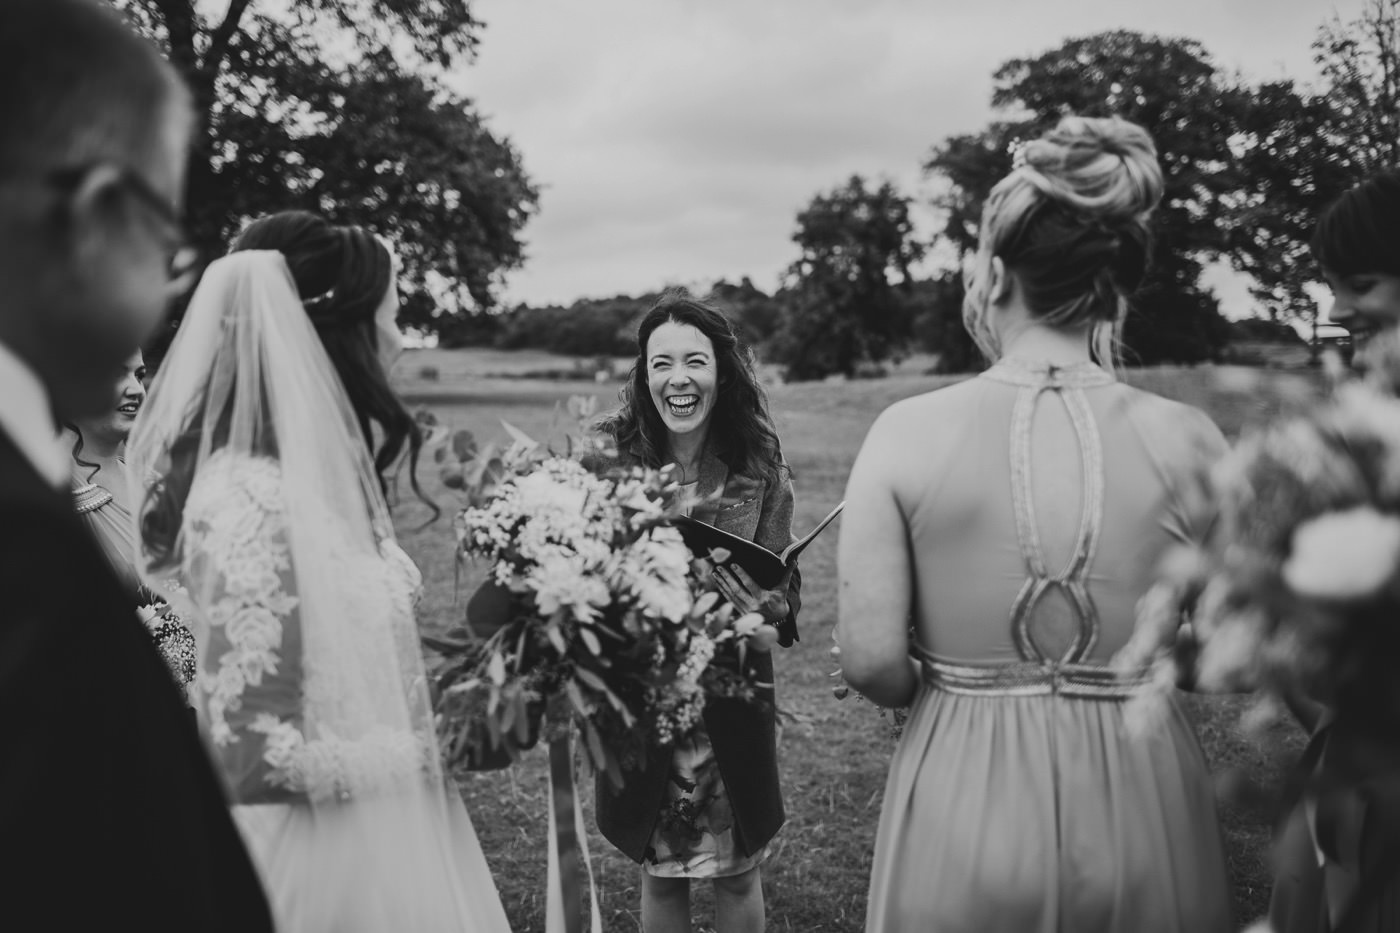 Steve & Tiffany | Bradgate Park wedding 50